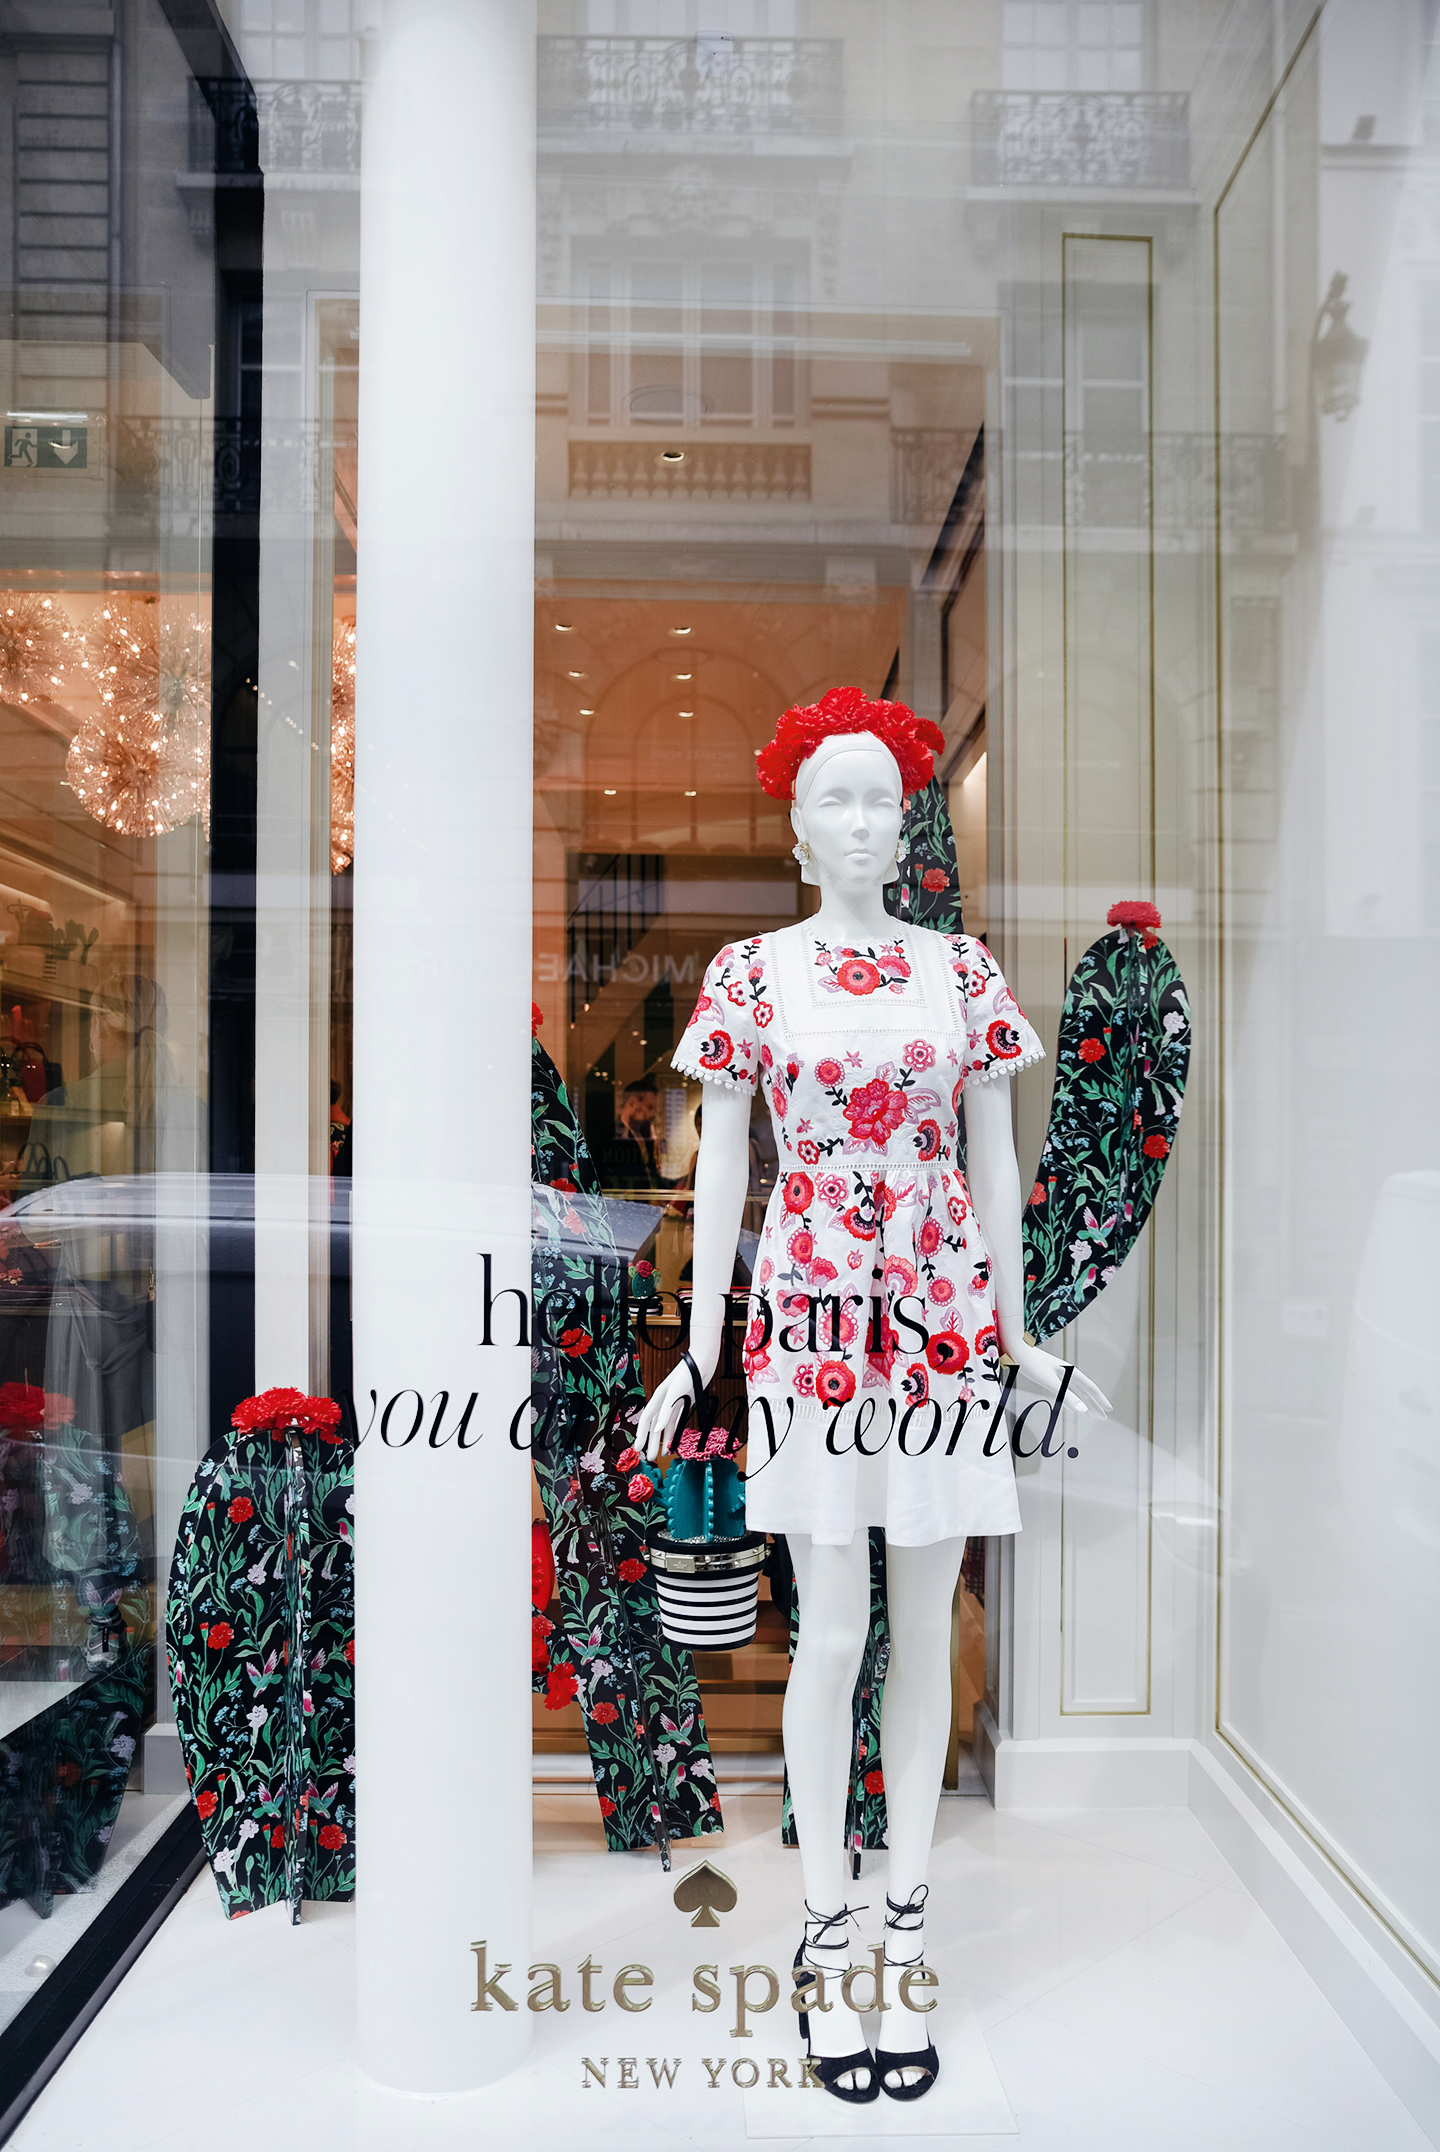 Blog-Mode-And-The-City-Lifestyle-Kate-Spade-Paris-418-rue-saint-honore-2